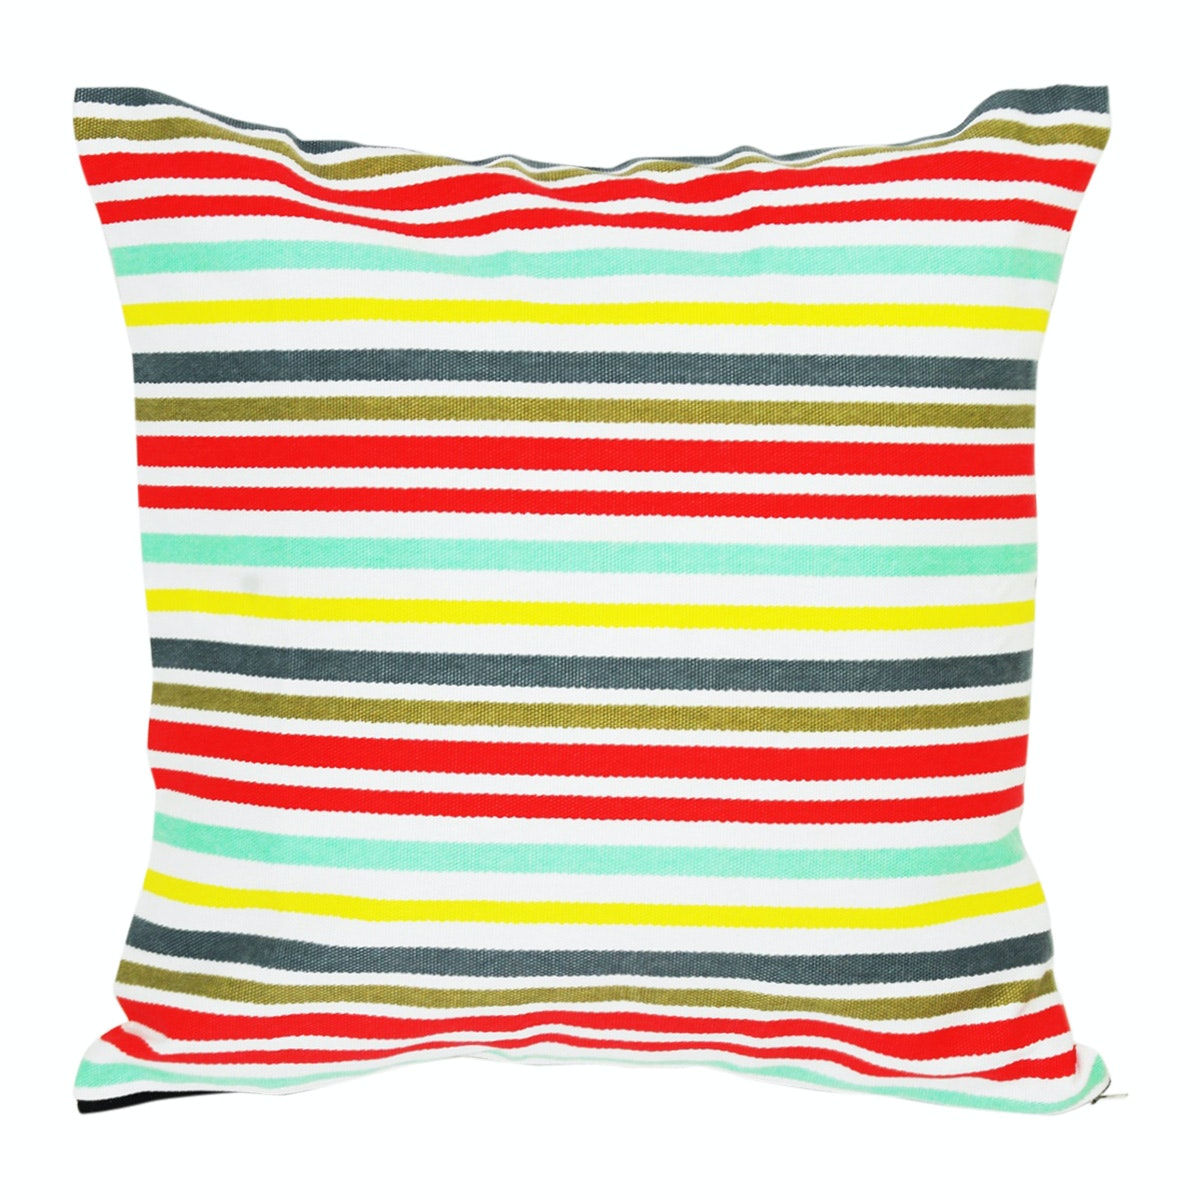 Stiletto Living Cushion Cover / Sarung Bantal - Rainbow Stripe